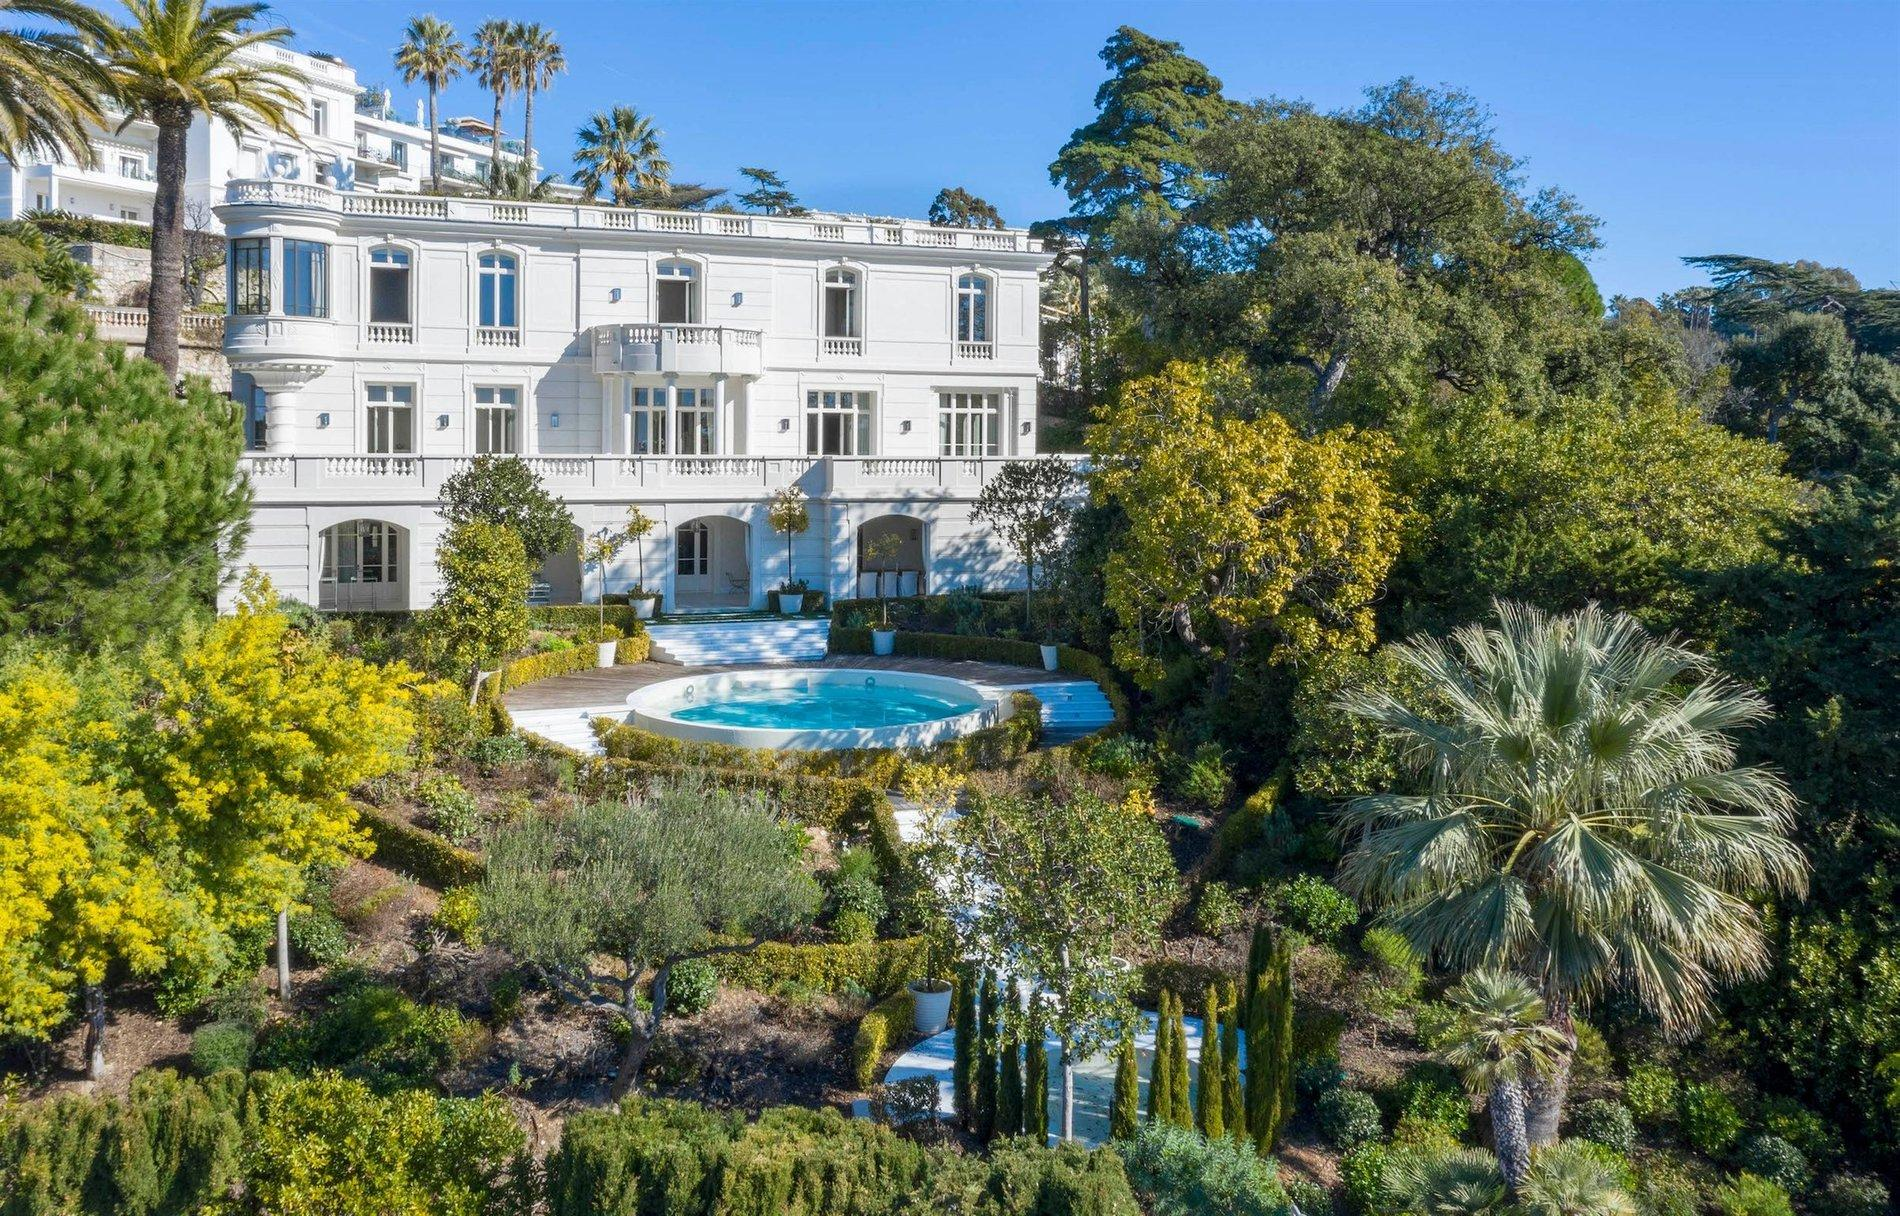 Luxury Property With Panoramic Sea Views In Cannes Garden